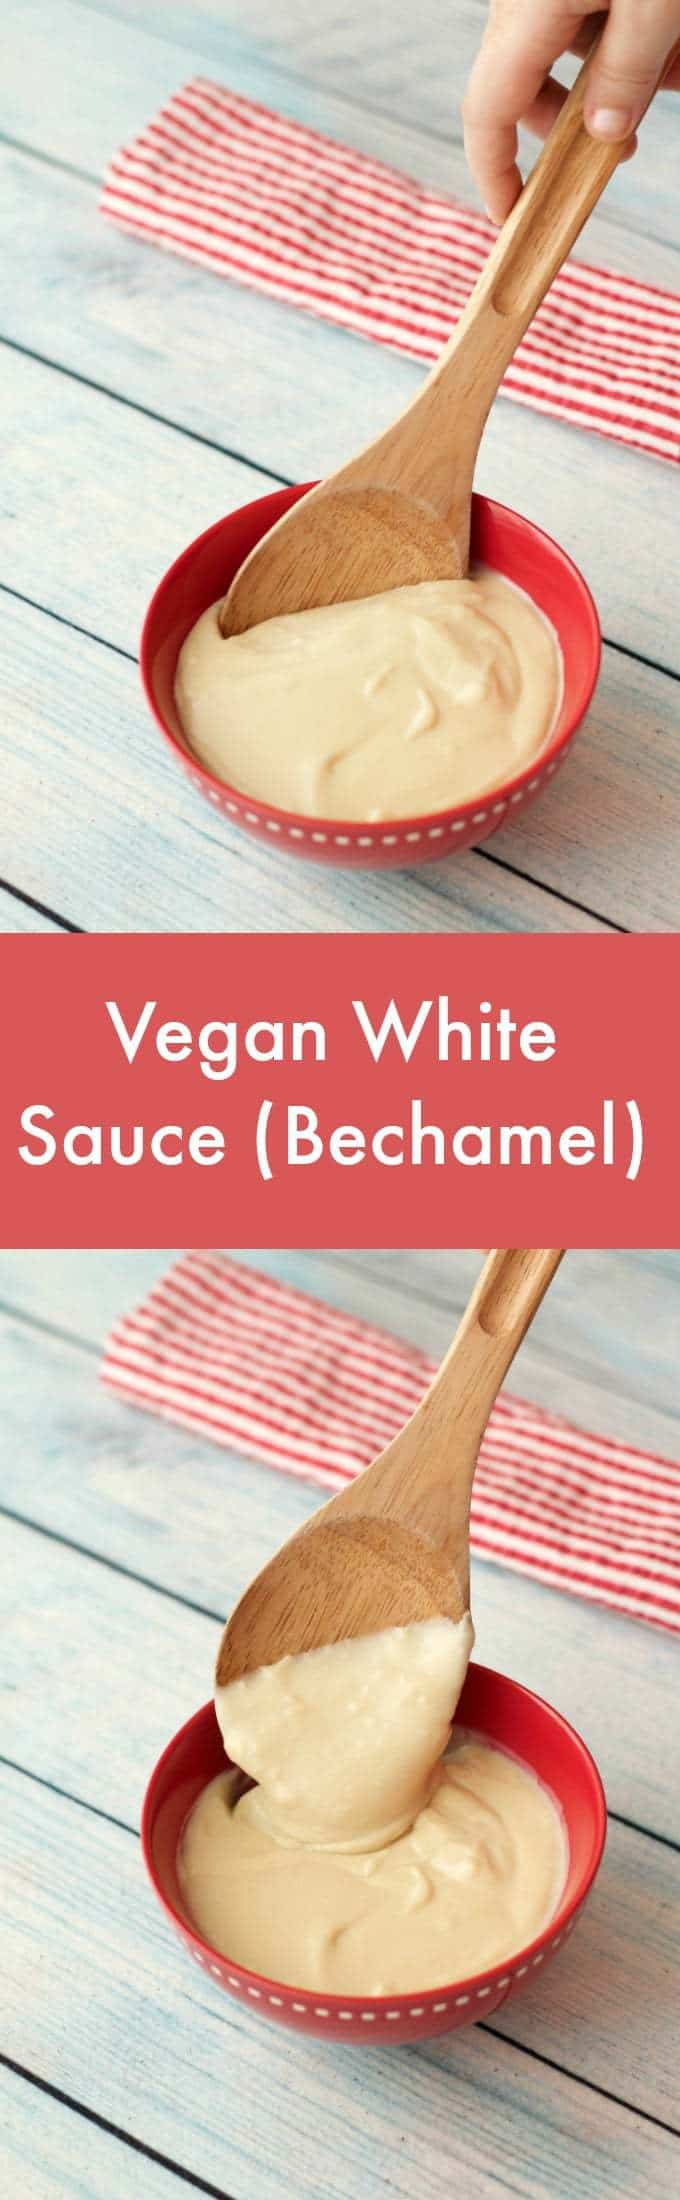 3-ingredient vegan white sauce recipe. Also called bechamel sauce, this simple sauce is creamy, wholesome and delicious and can be used whenever you need a white sauce. Vegan | Vegan White Sauce | Vegan Sauces | lovingitvegan.com